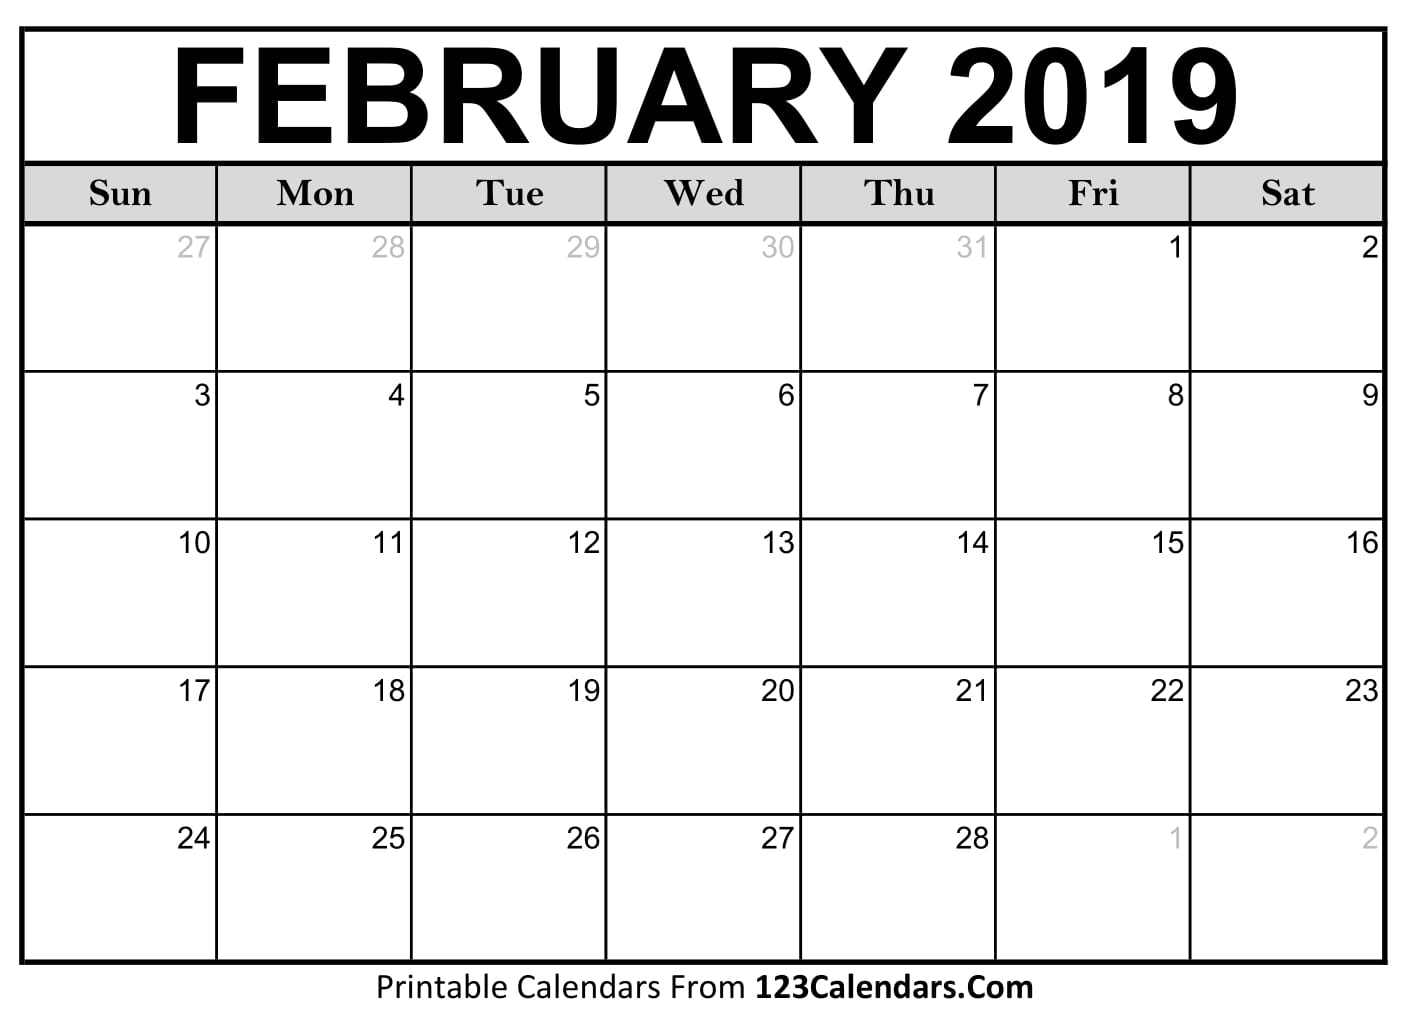 Images Of Calendars February 2019 2019 Printable Monthly Calendar Formats (Blank) | Zenodo